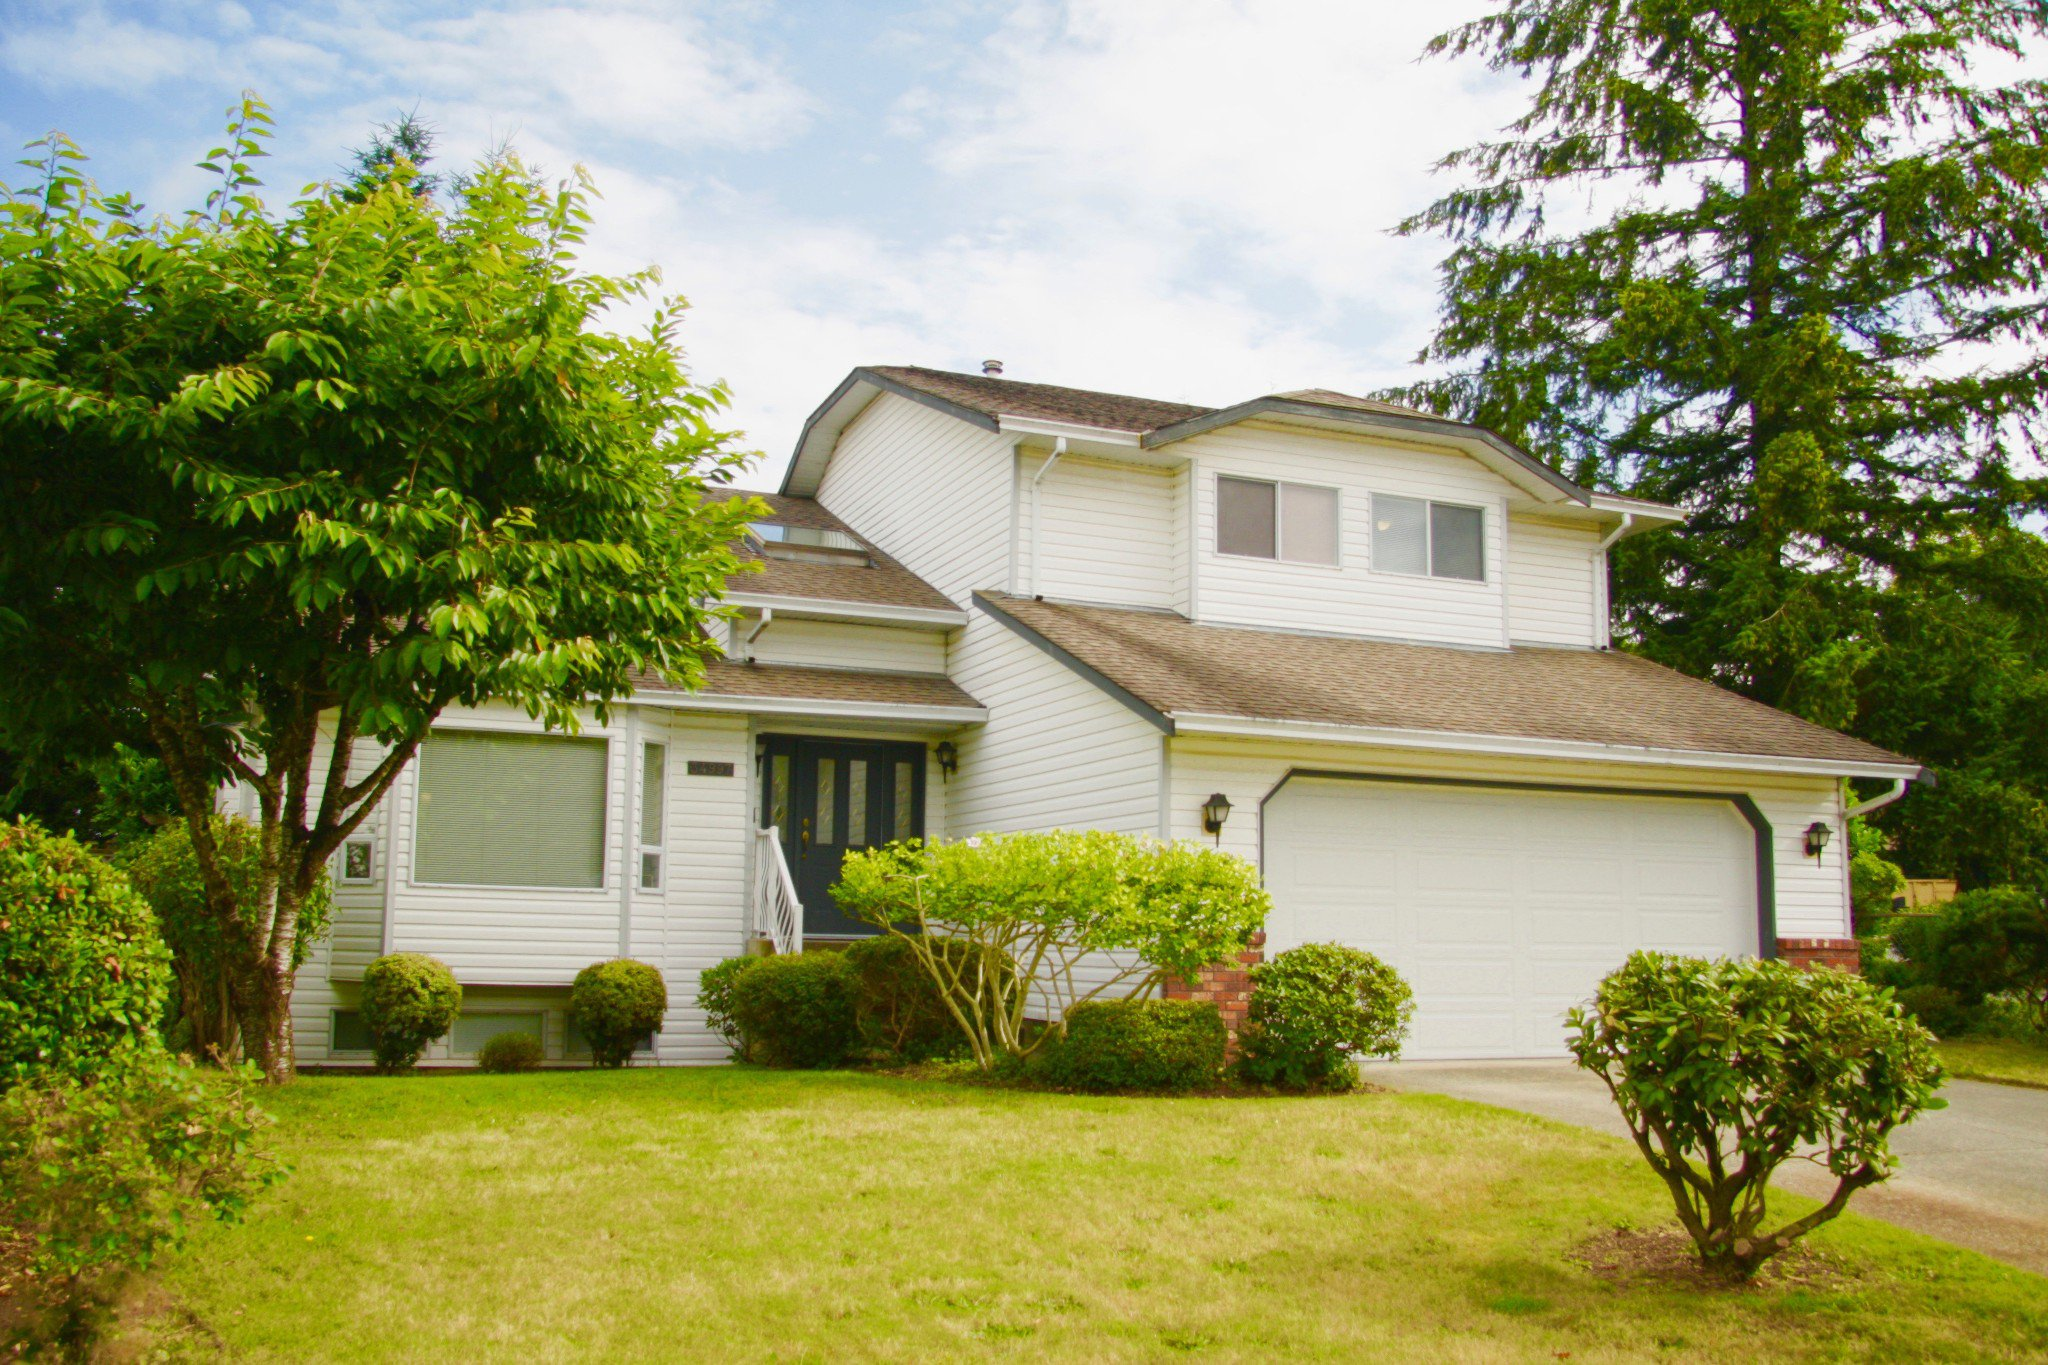 Main Photo: 33497 Exbury Avenue in Abbotsford: Abbotsford East House for sale : MLS®# R2487859